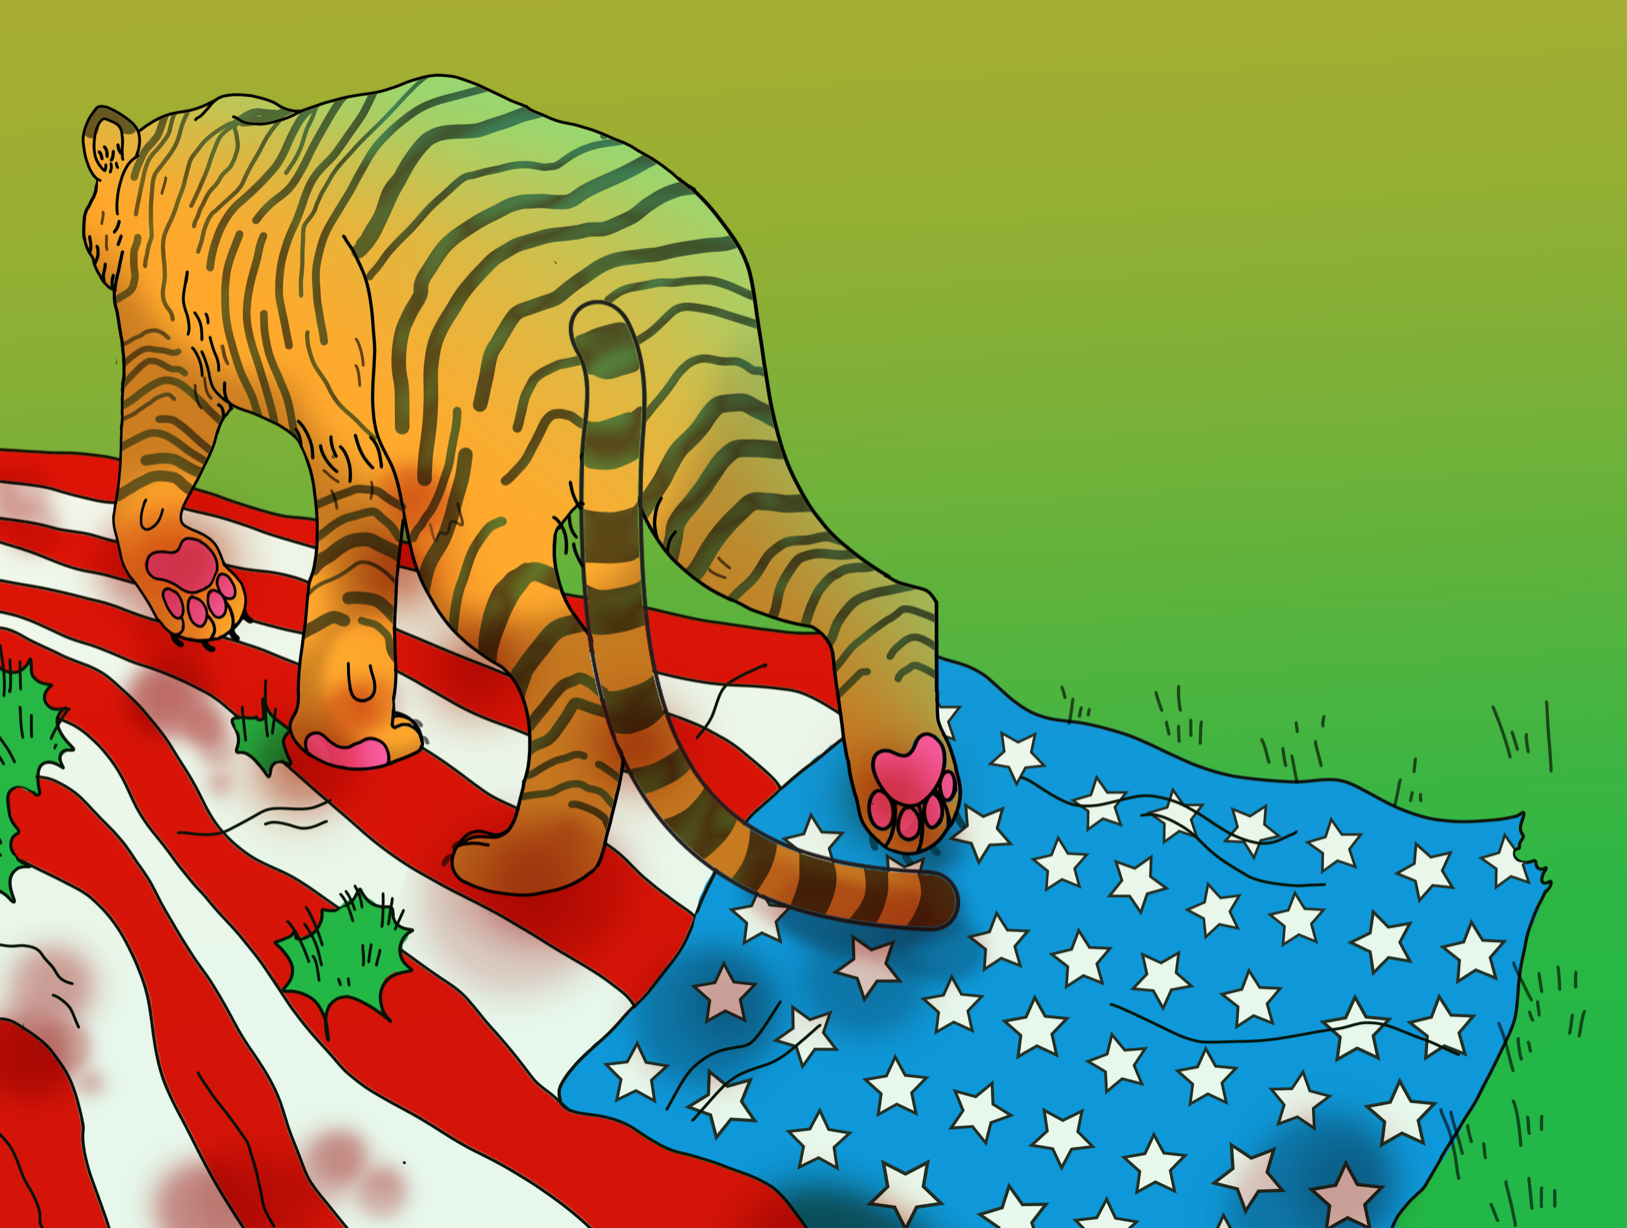 Tiger King, Its Cultures, and the American Dream